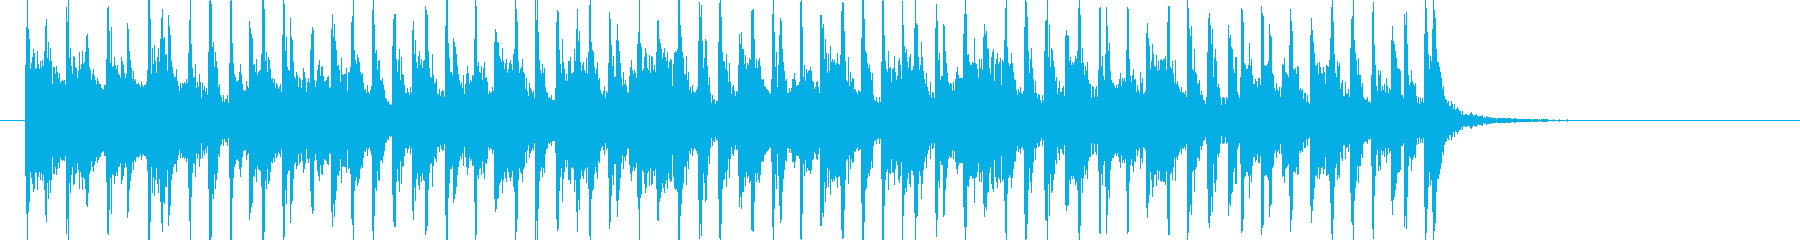 Exciting bright pop's reproduced waveform